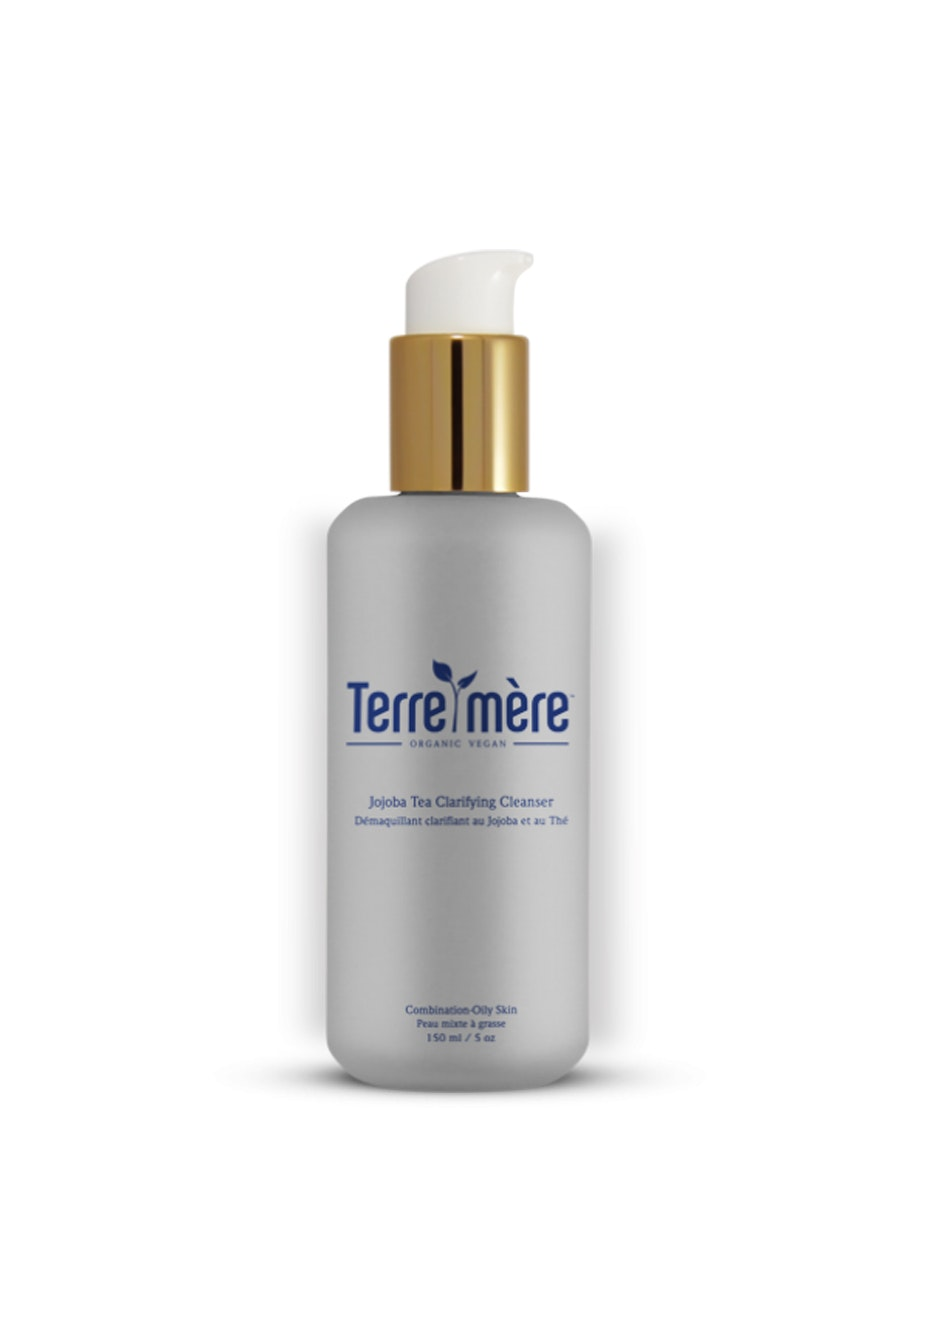 Terre Mere - Jojoba Tea Clarifying Cleanser - Combination-Oily Skin